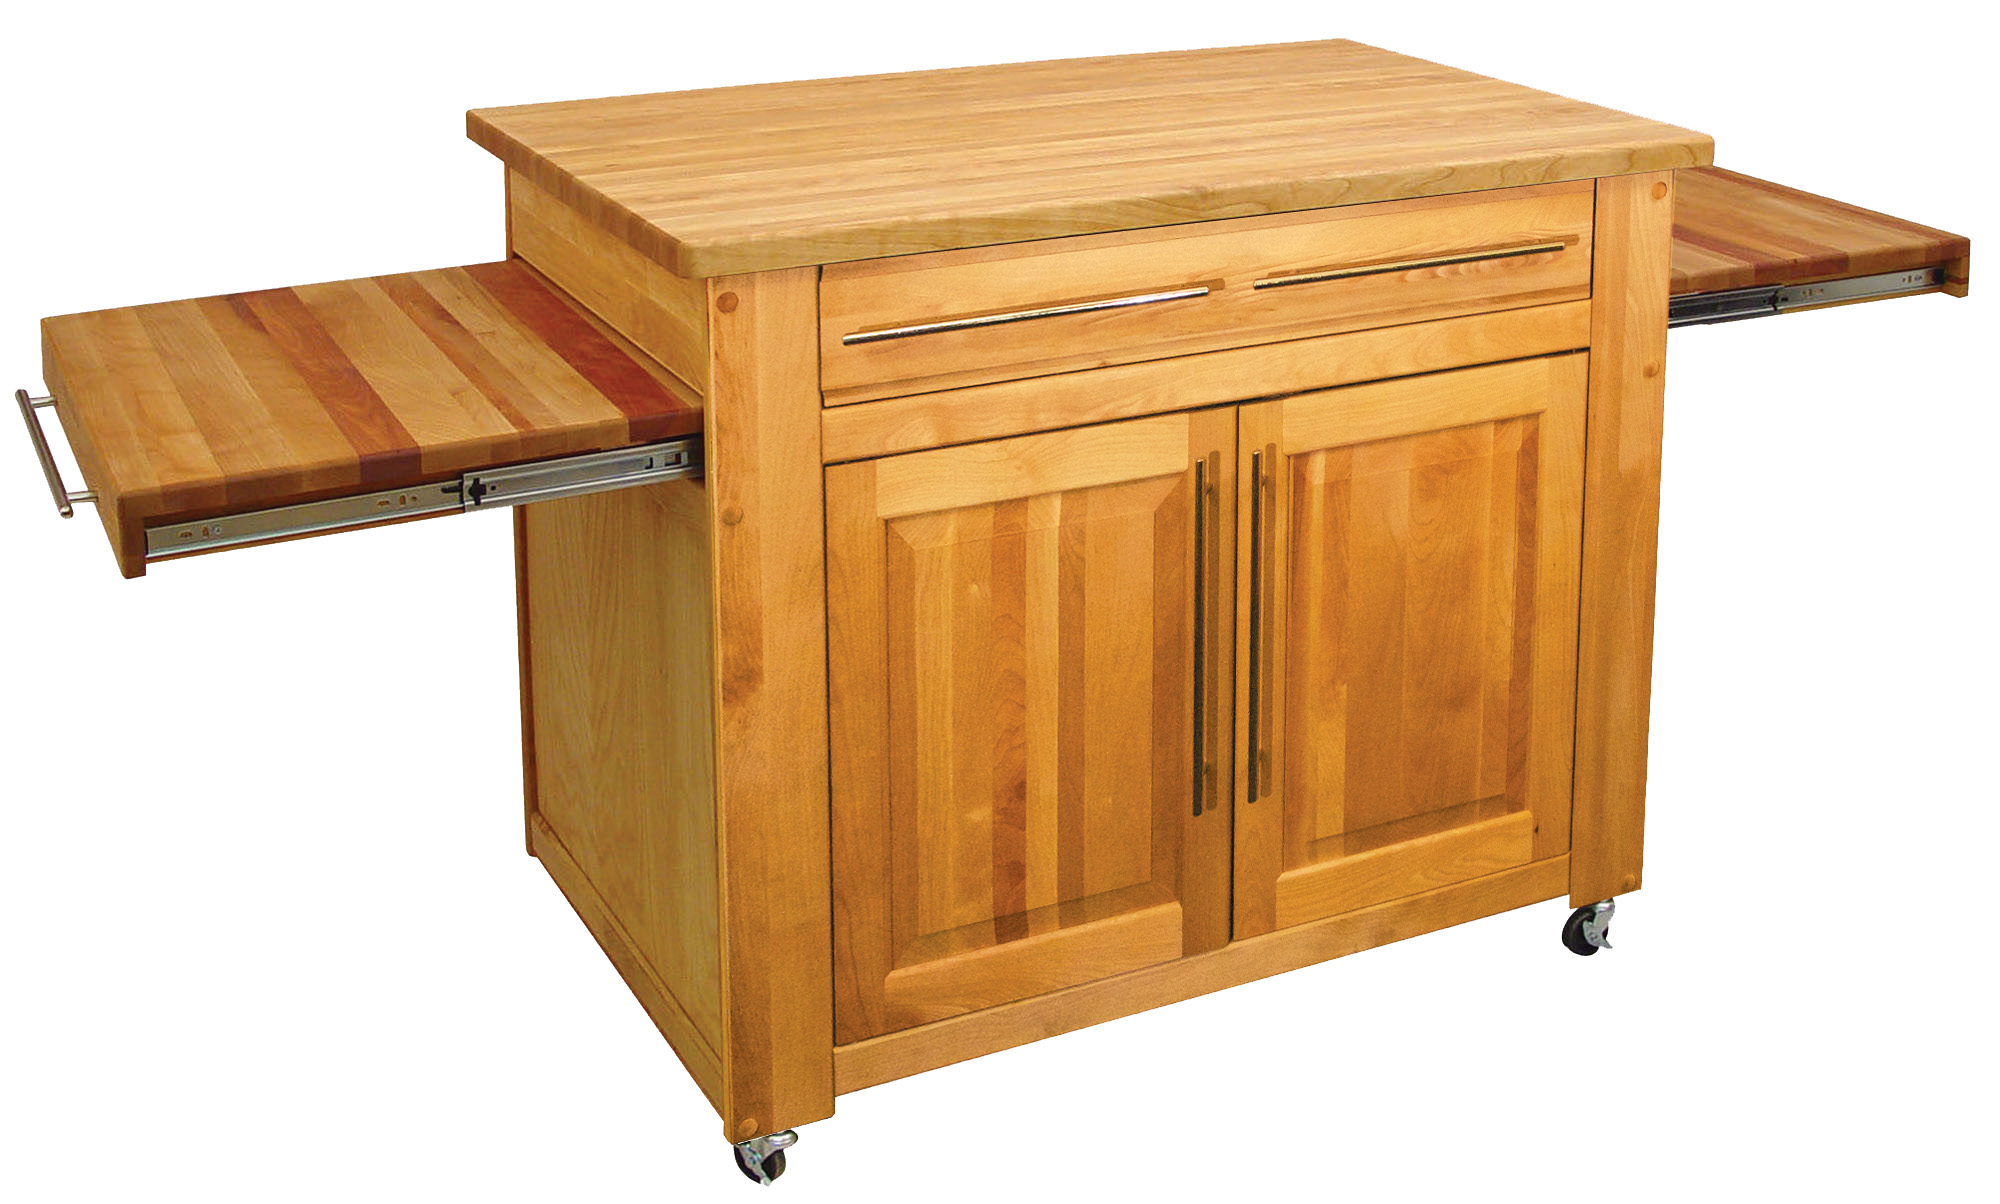 Kitchen Island Butcher Block Tops Catskill Empire Kitchen Island Pull Out Leaves